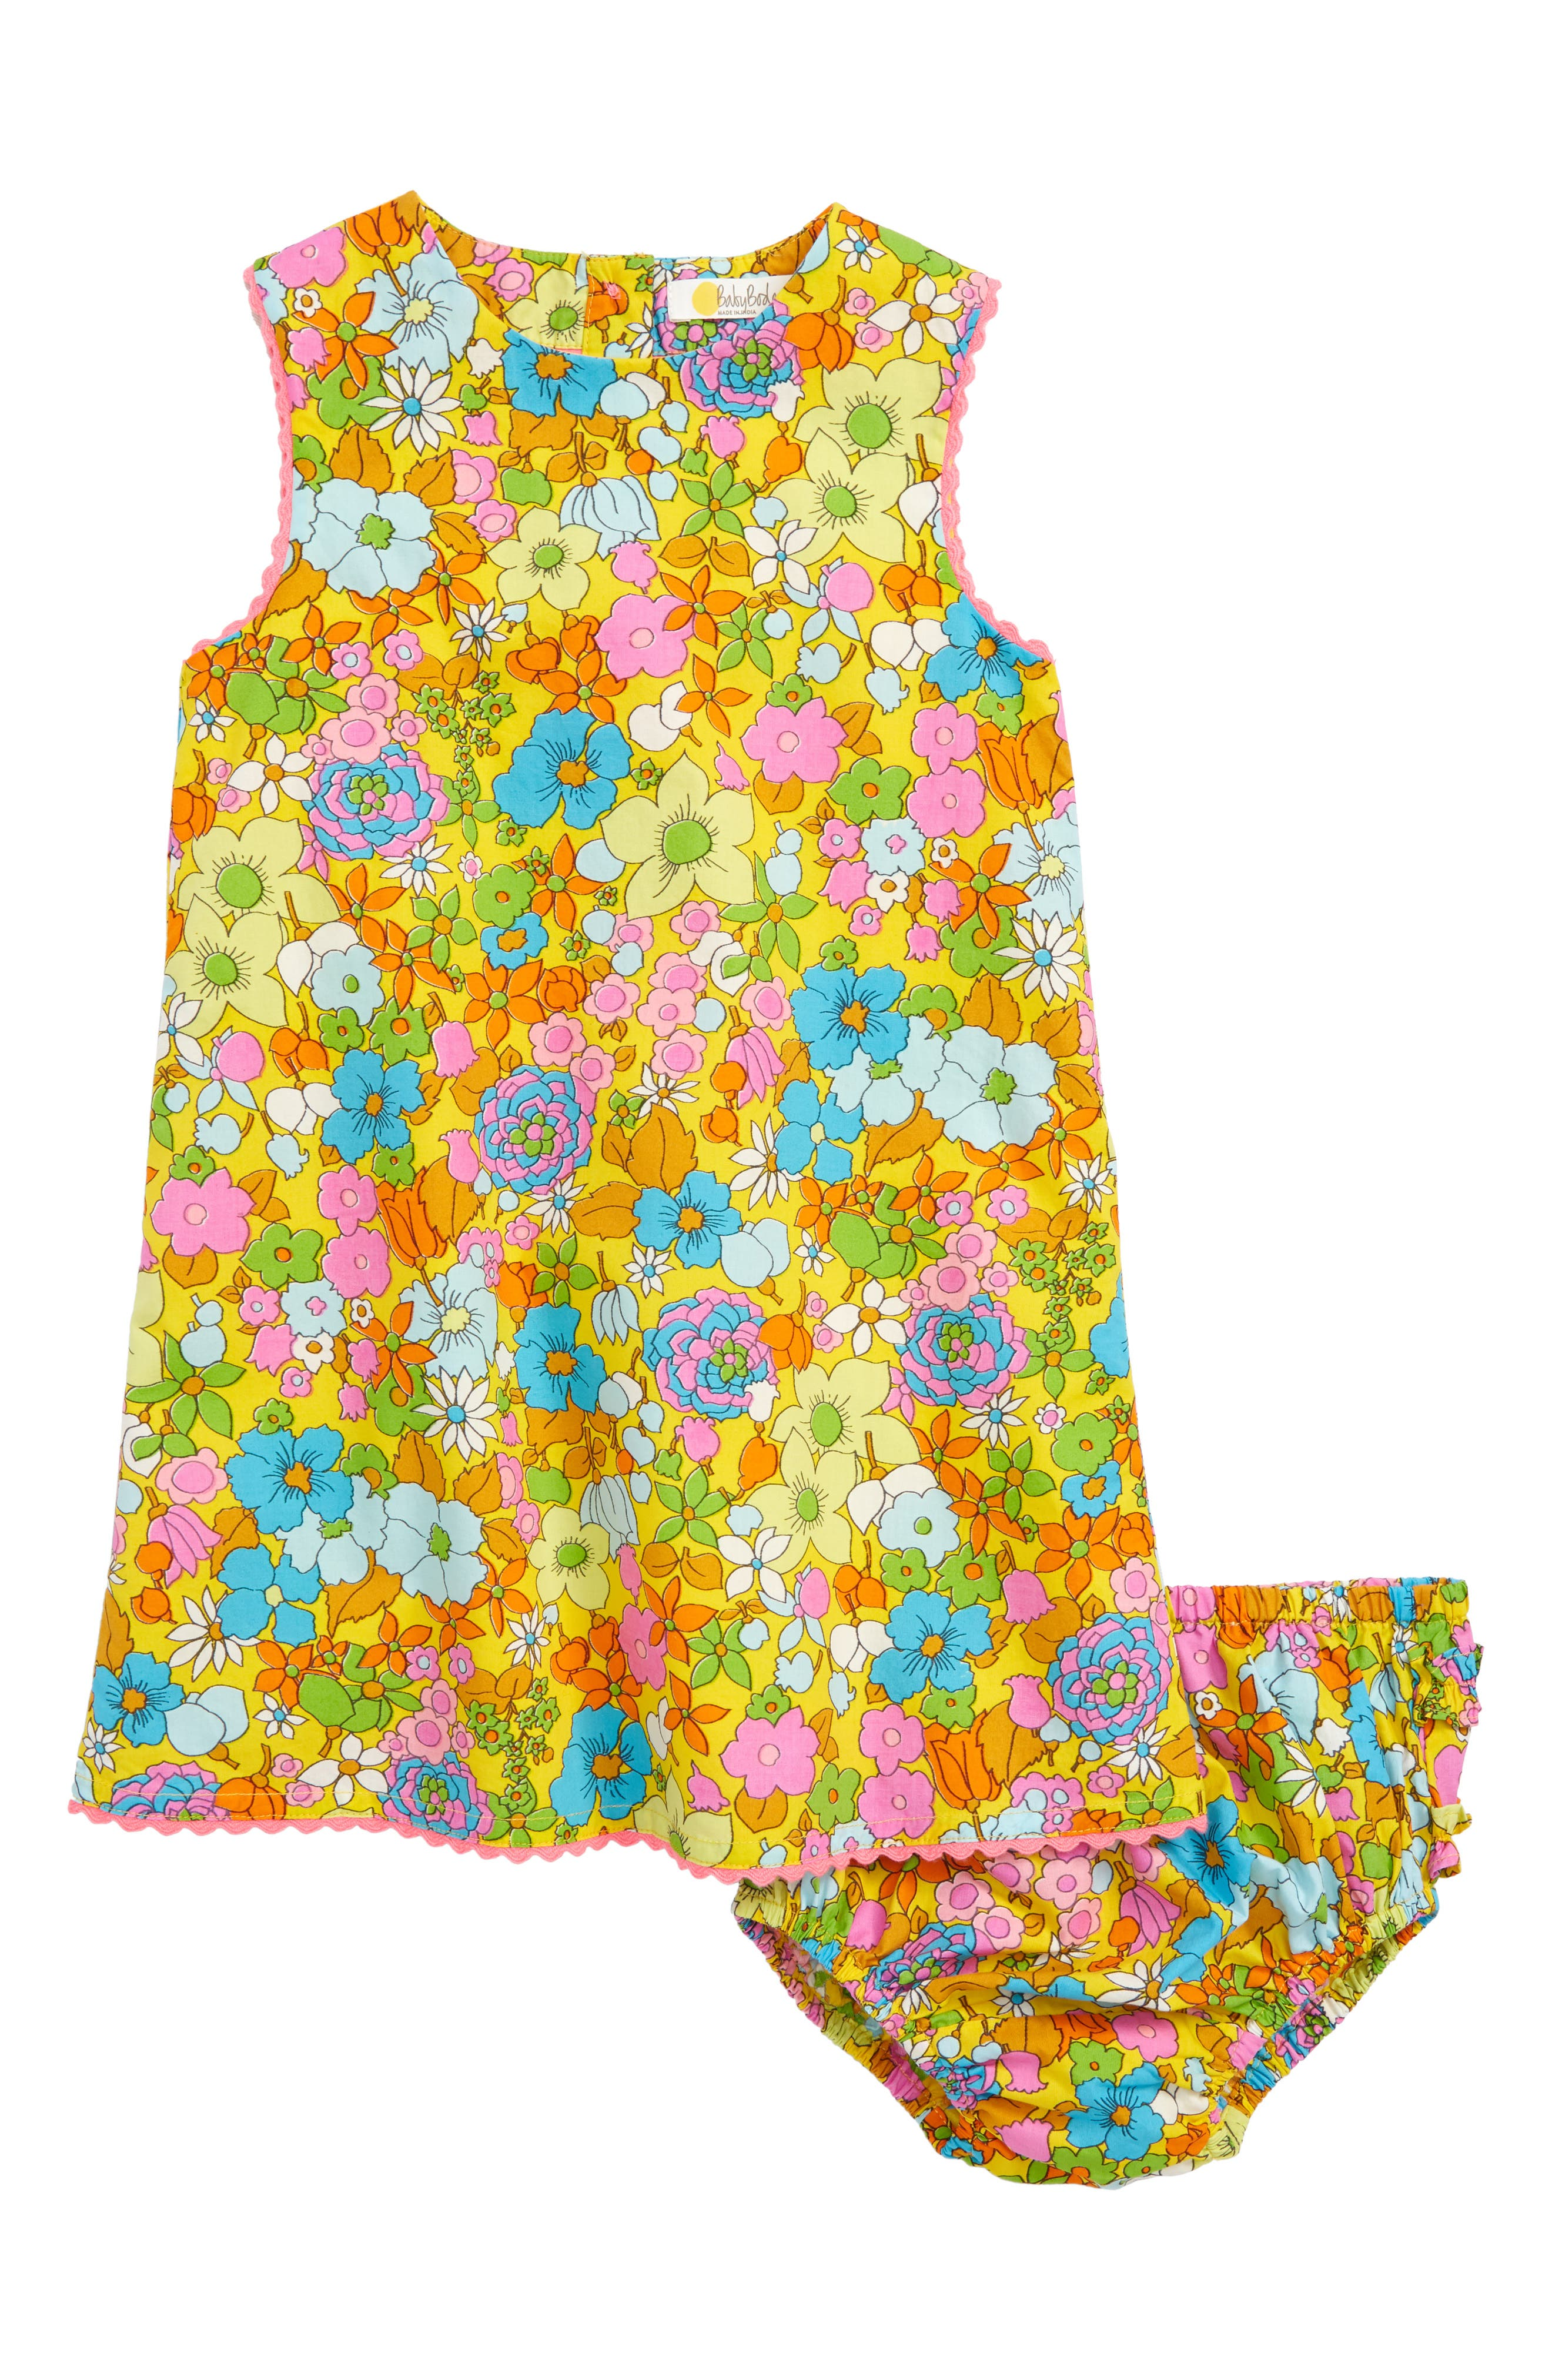 Mini Boden High Summer Woven Lace Dress (Baby Girls & Toddler Girls)